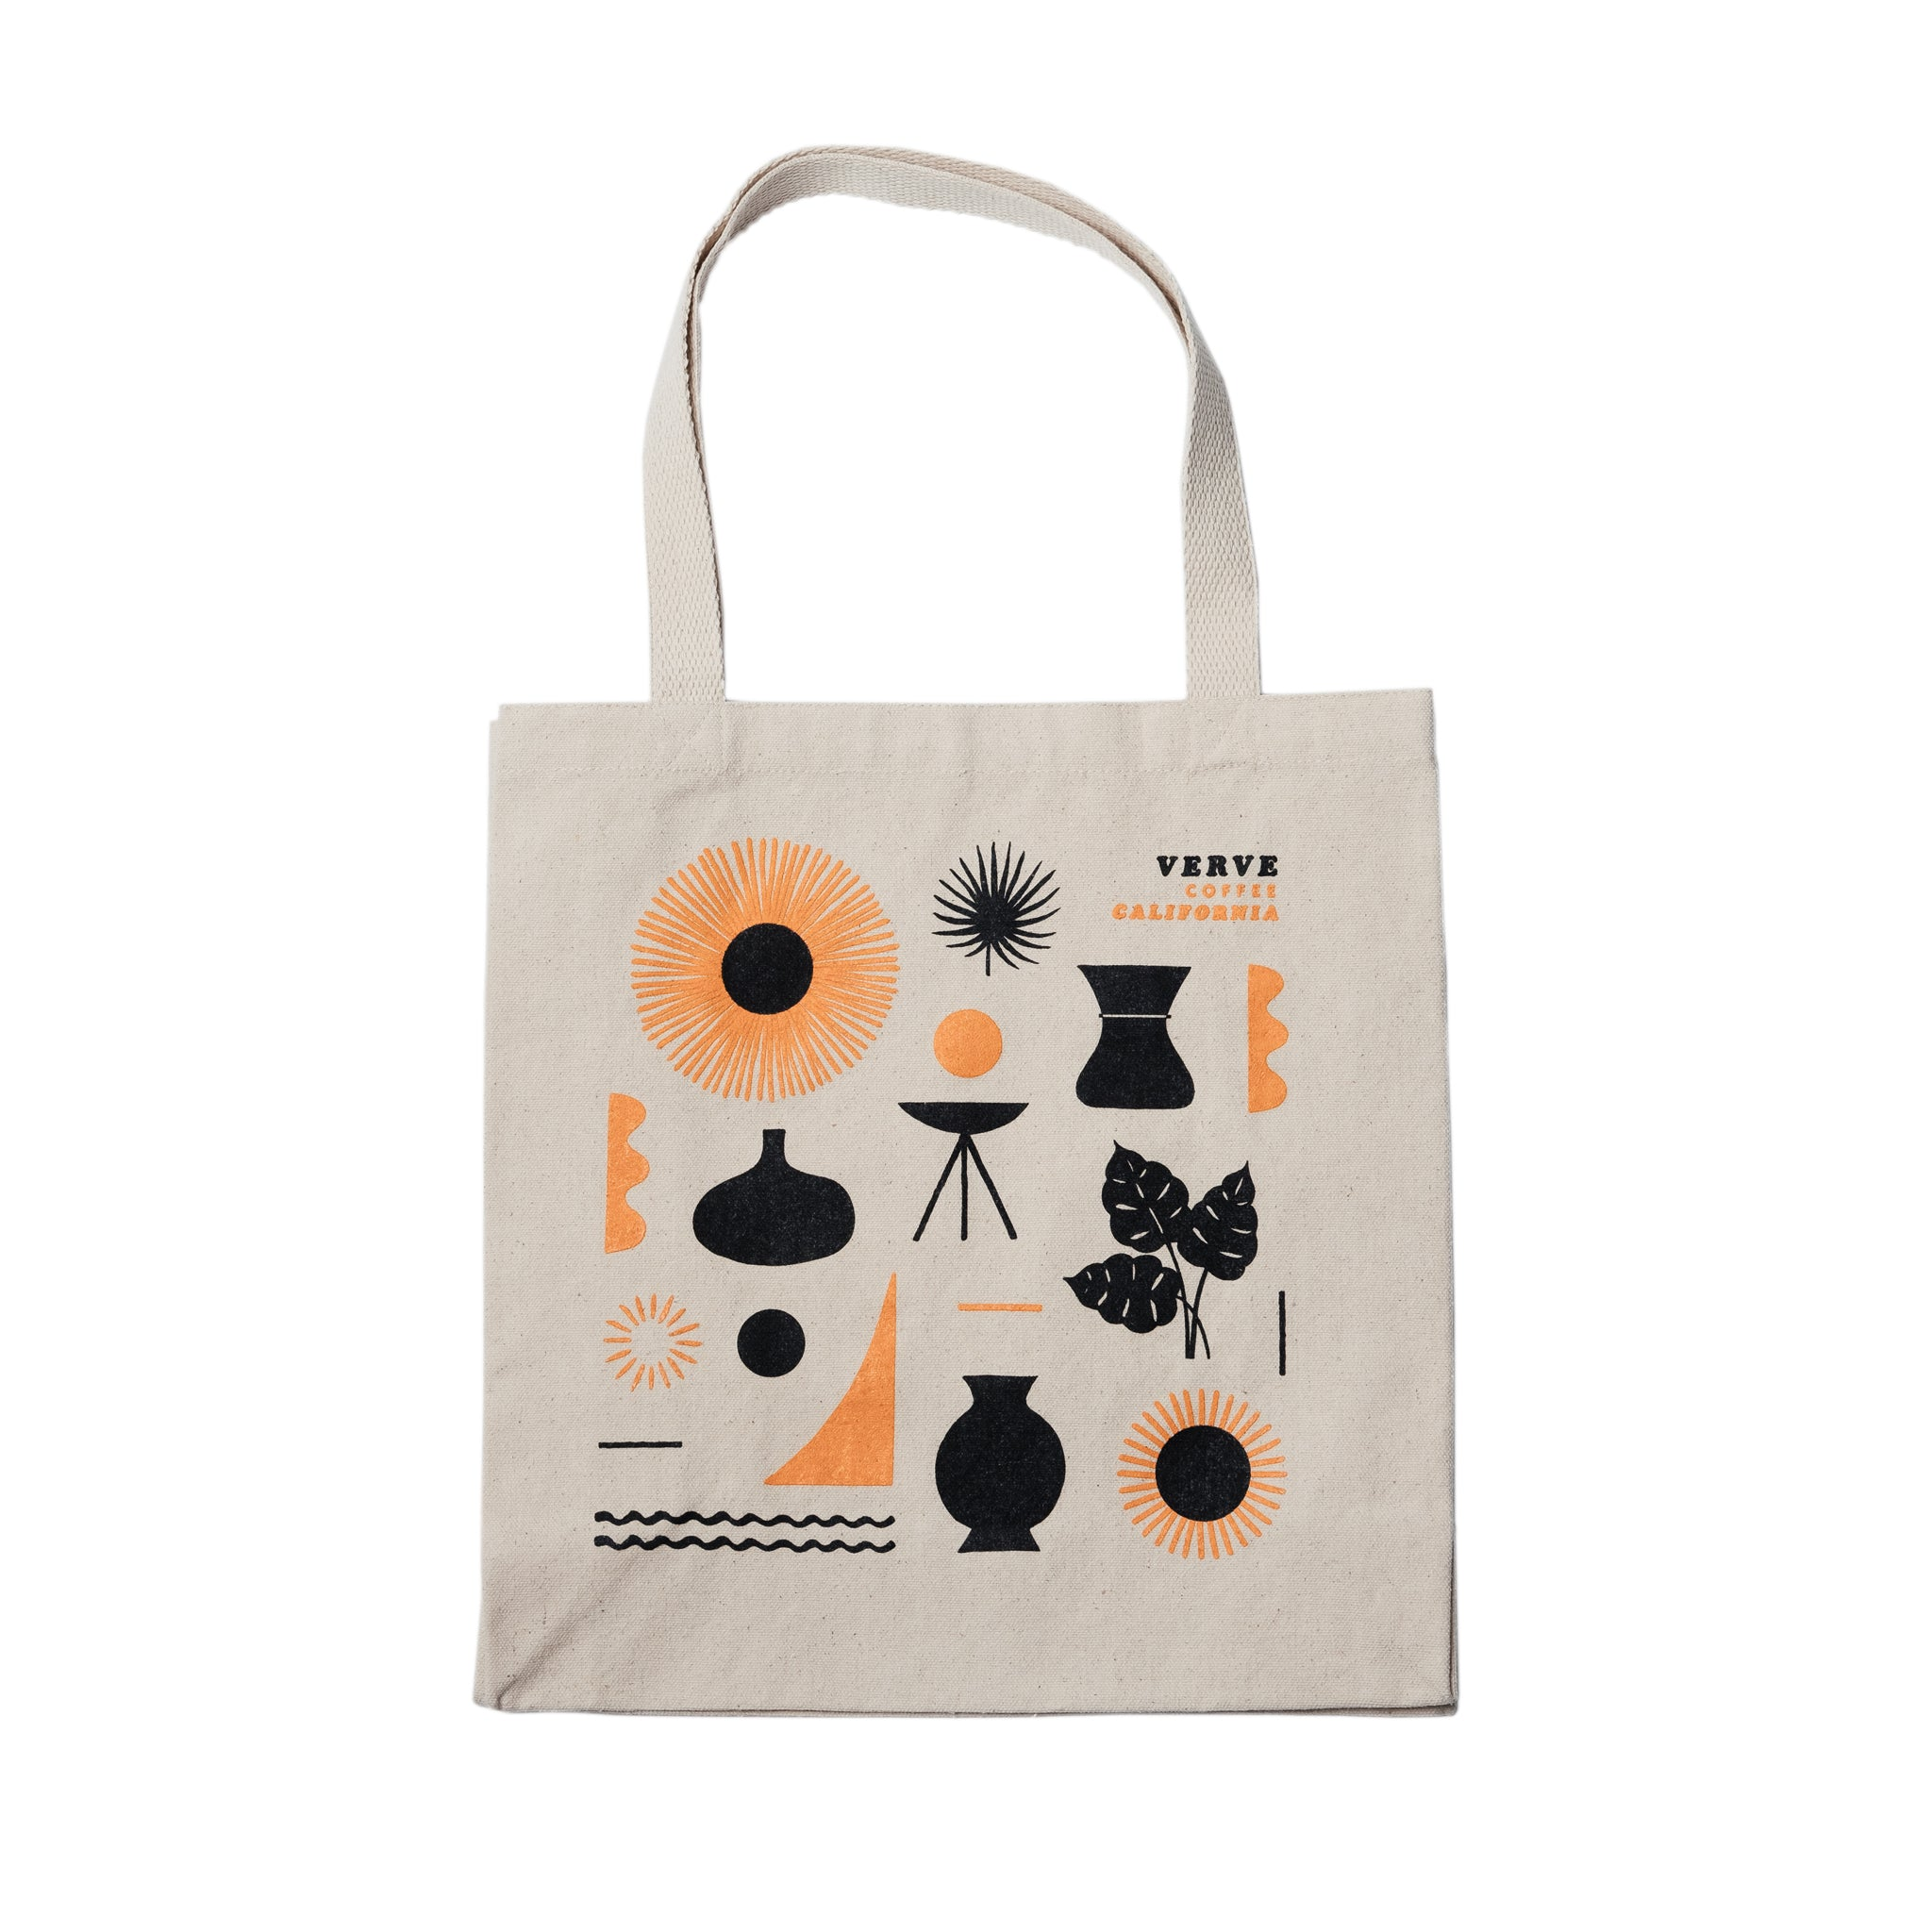 The Curio Tote Bag